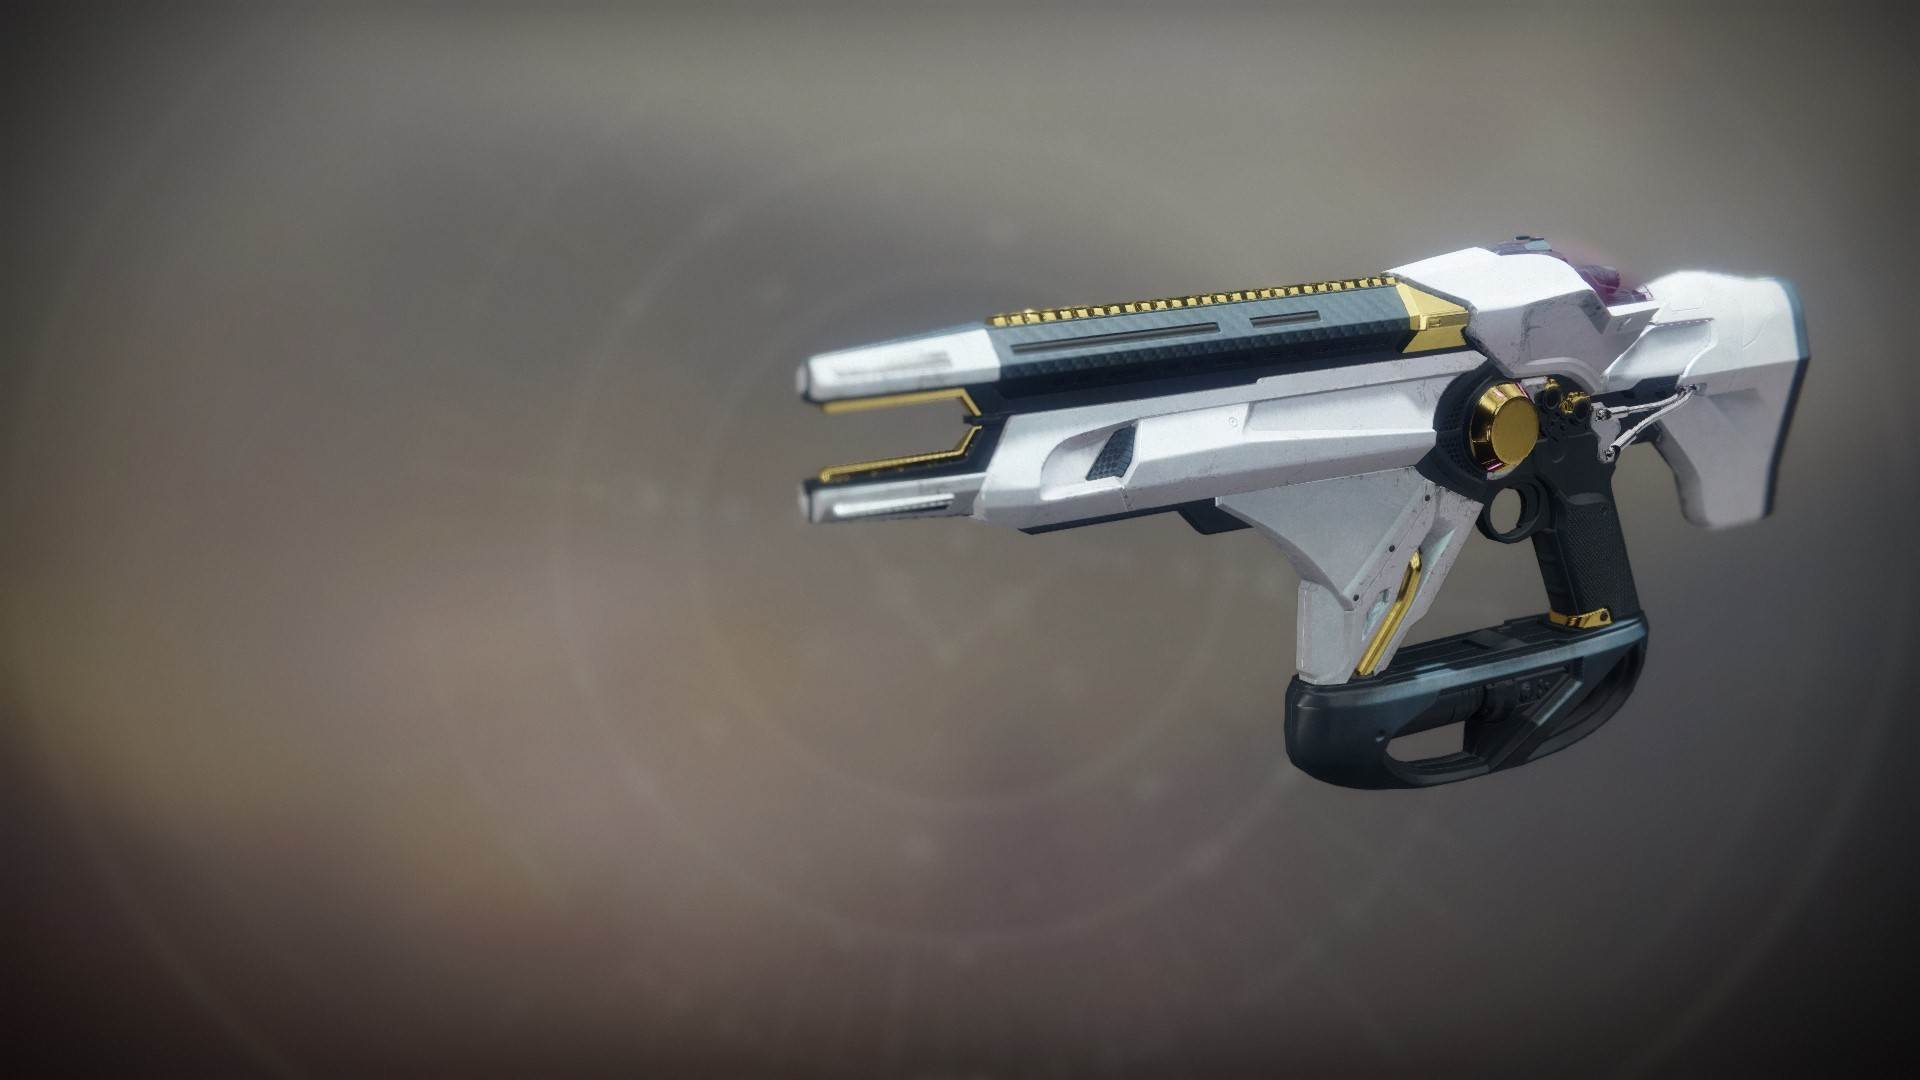 What Xur is selling in Destiny 2 - October 18, 2019